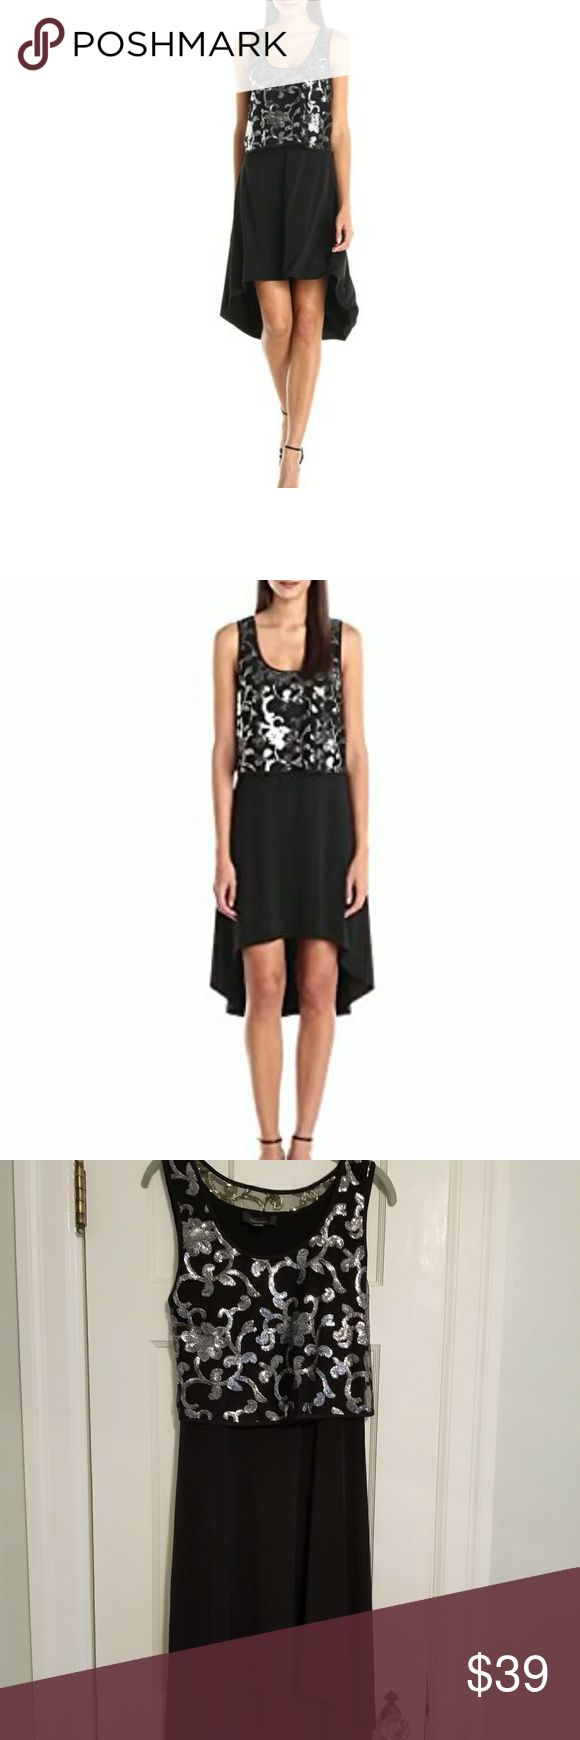 Karen Kane High/Lo Dress w Sequin Top Karen Kane Boho Blush Black Jersey Hi-Lo Dress with Silver Sequin Top.     Size: L      New without tags   92% Polyester, 8% Spandex Made in the USA or Imported Dry Clean Only Scoop neck Sleeveless Karen Kane Dresses High Low